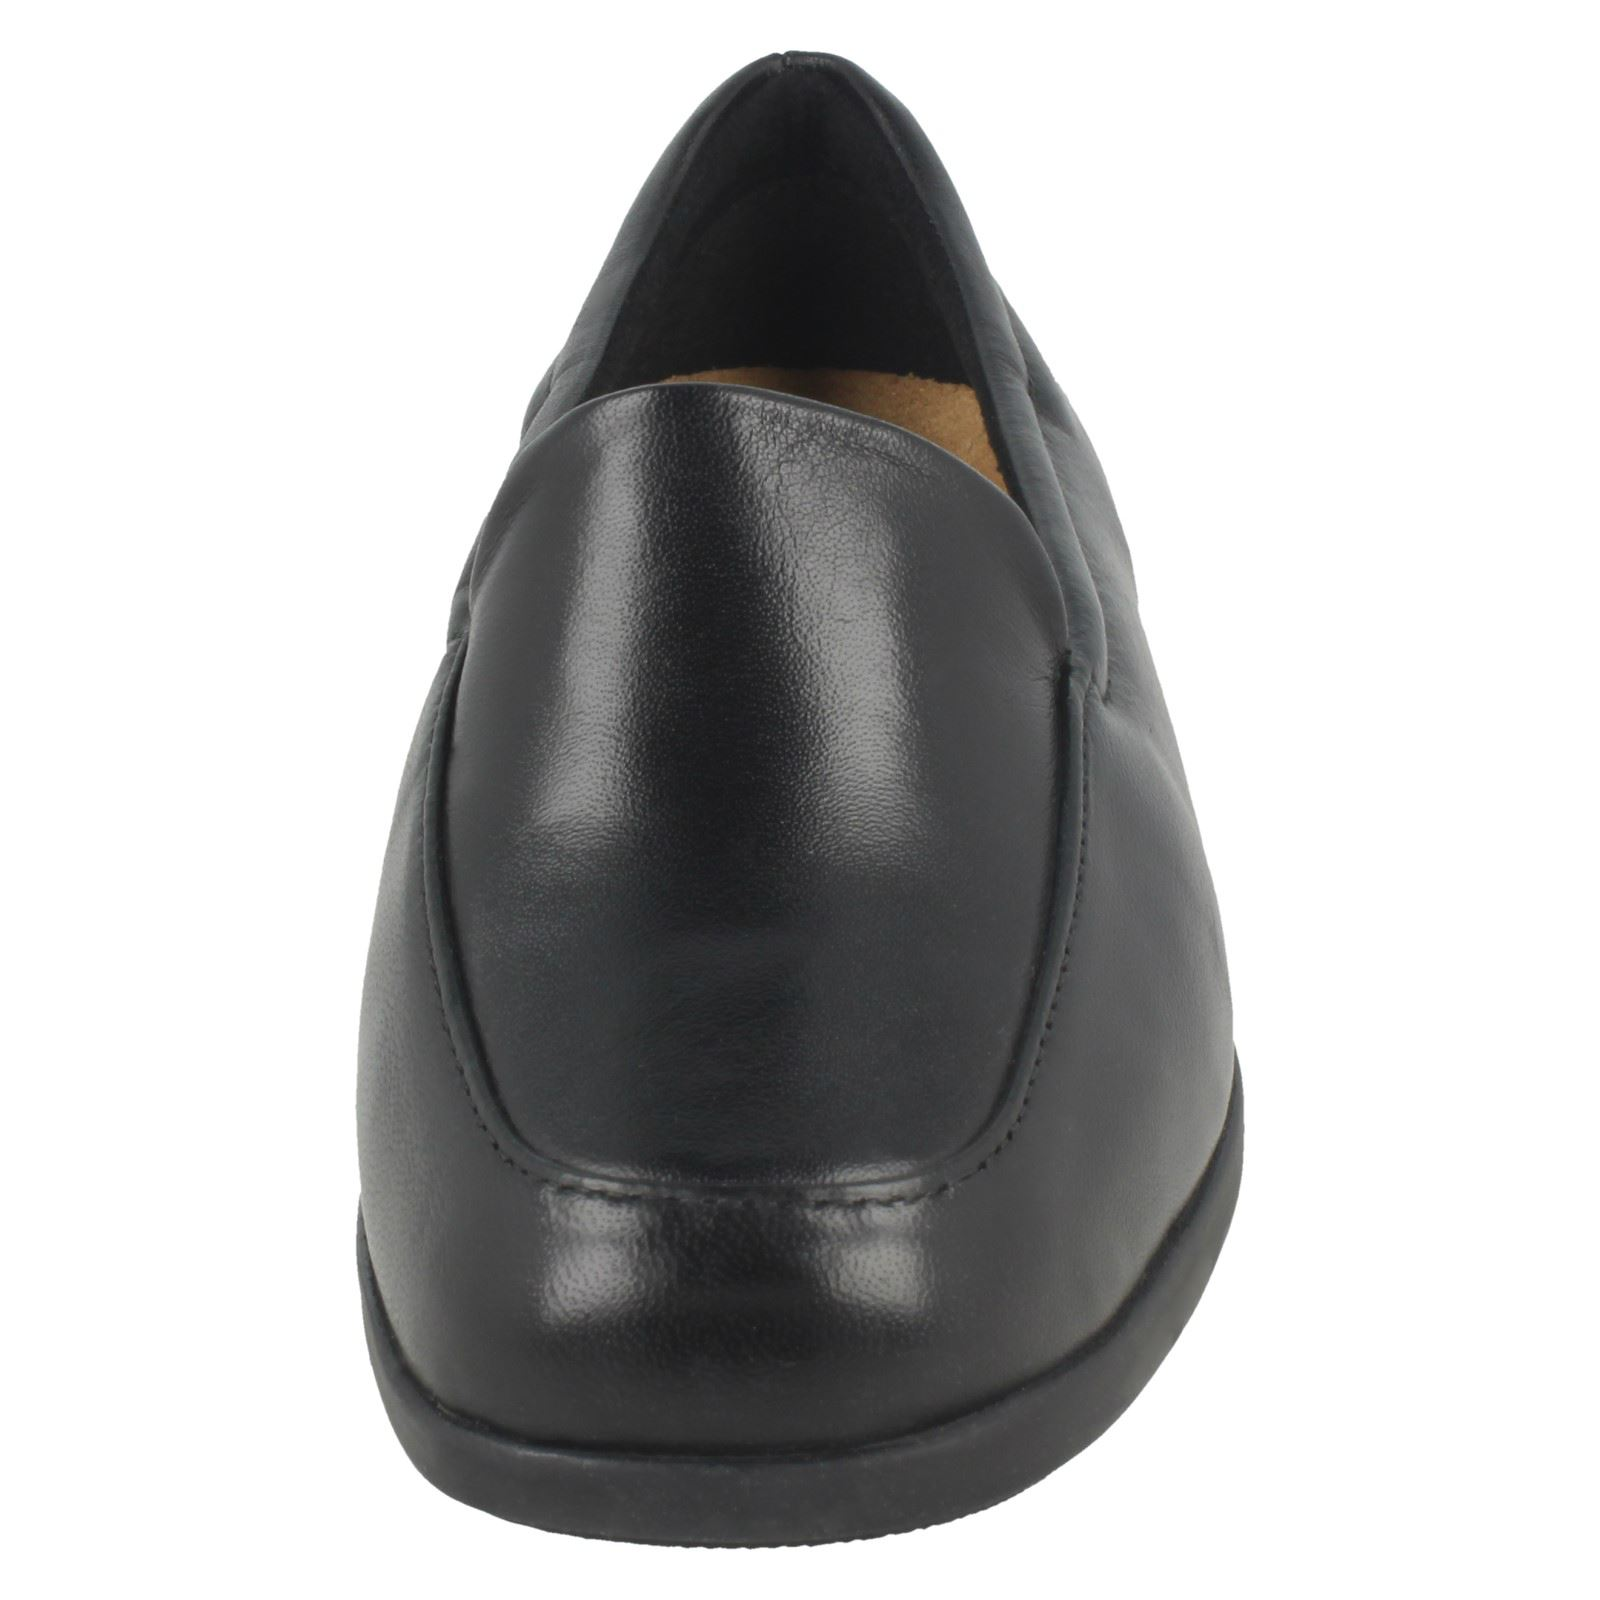 Ladies Clarks Casual Flat Loafer Style Shoes Georgia